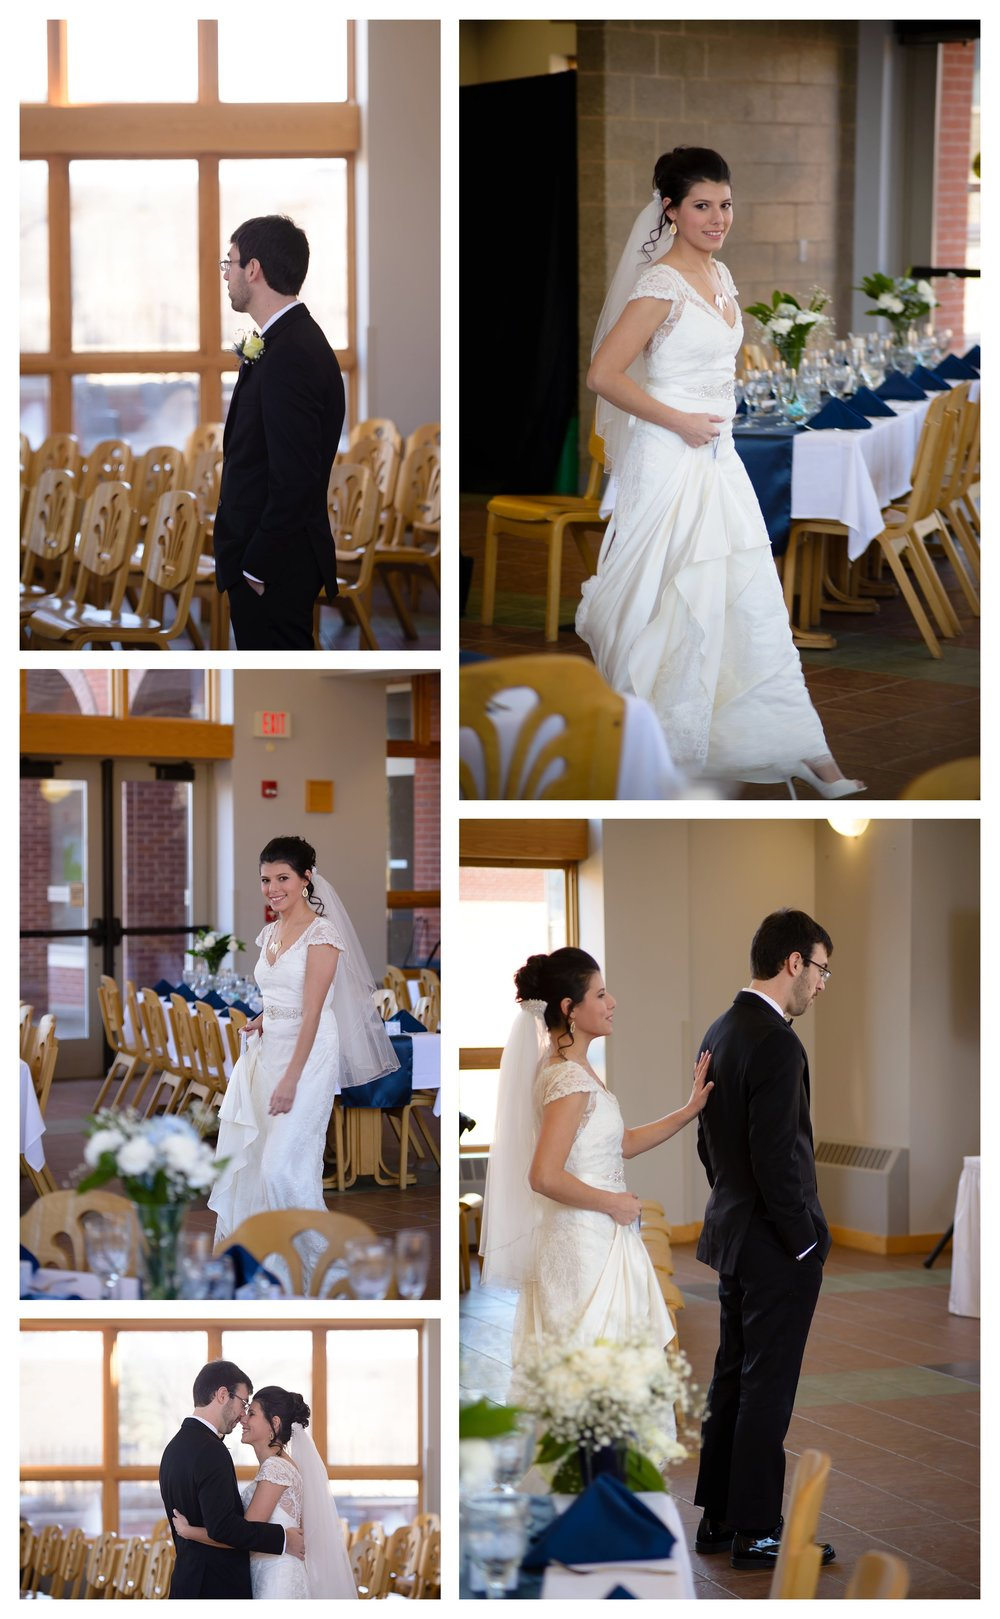 ashland wedding photographer iron river brule wisconsin ps 139 photography jen jensen_0126.jpg